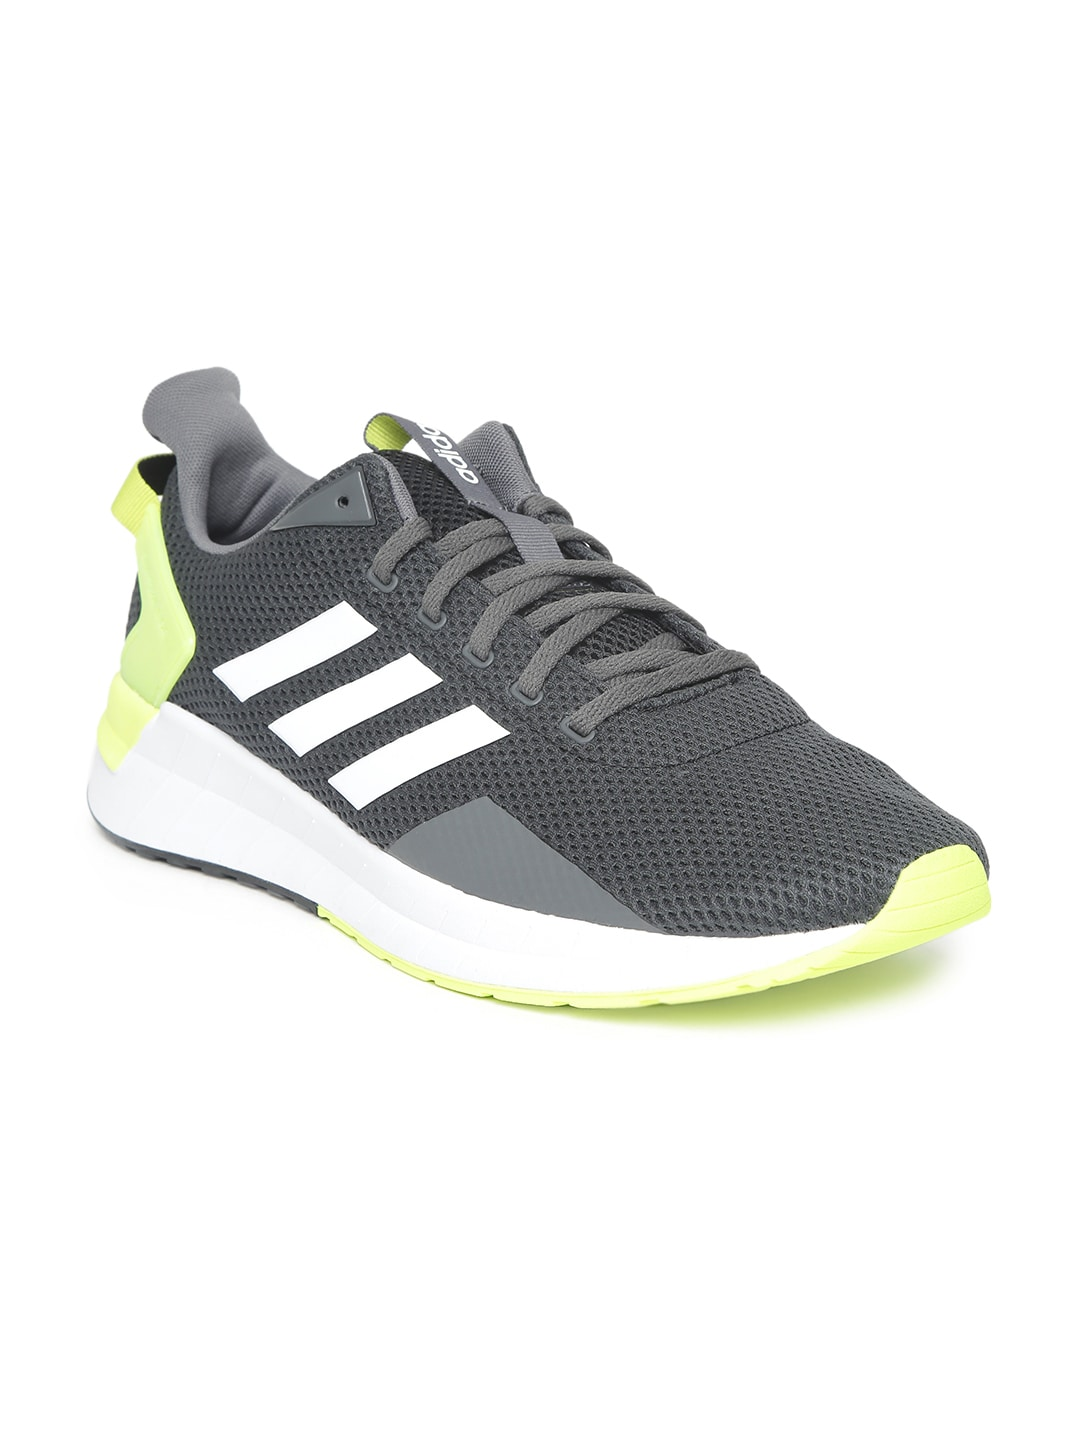 save off 203cc fcb9a Adidas Basketball Shoes  Buy Adidas Basketball Shoes Online in India at  Best Price